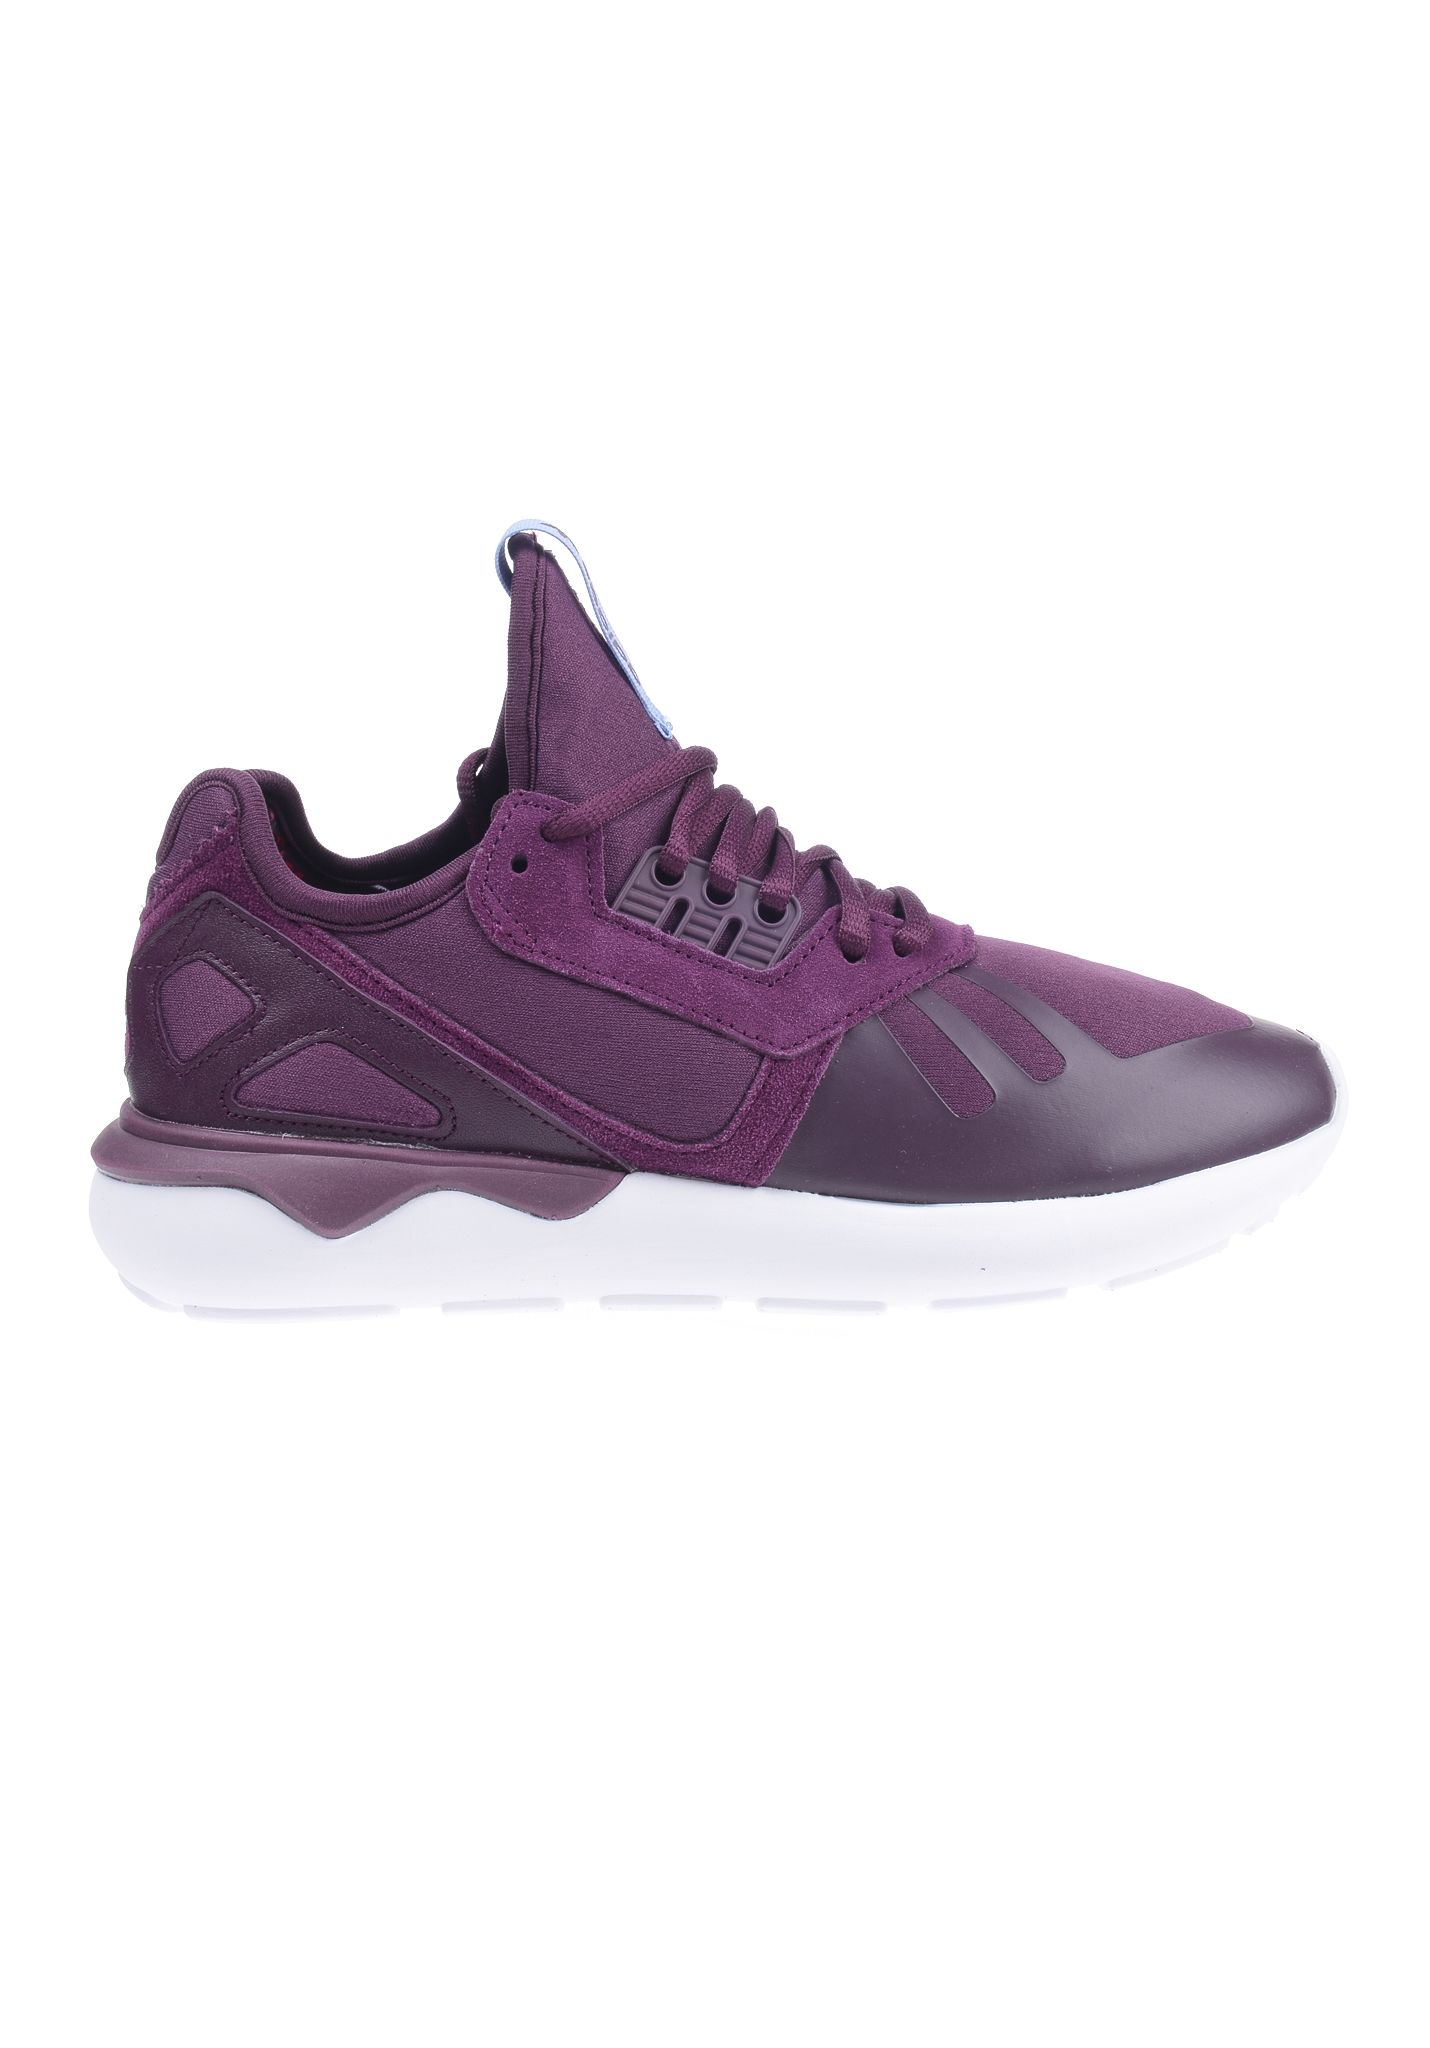 Adidas Tubular Runner Woman